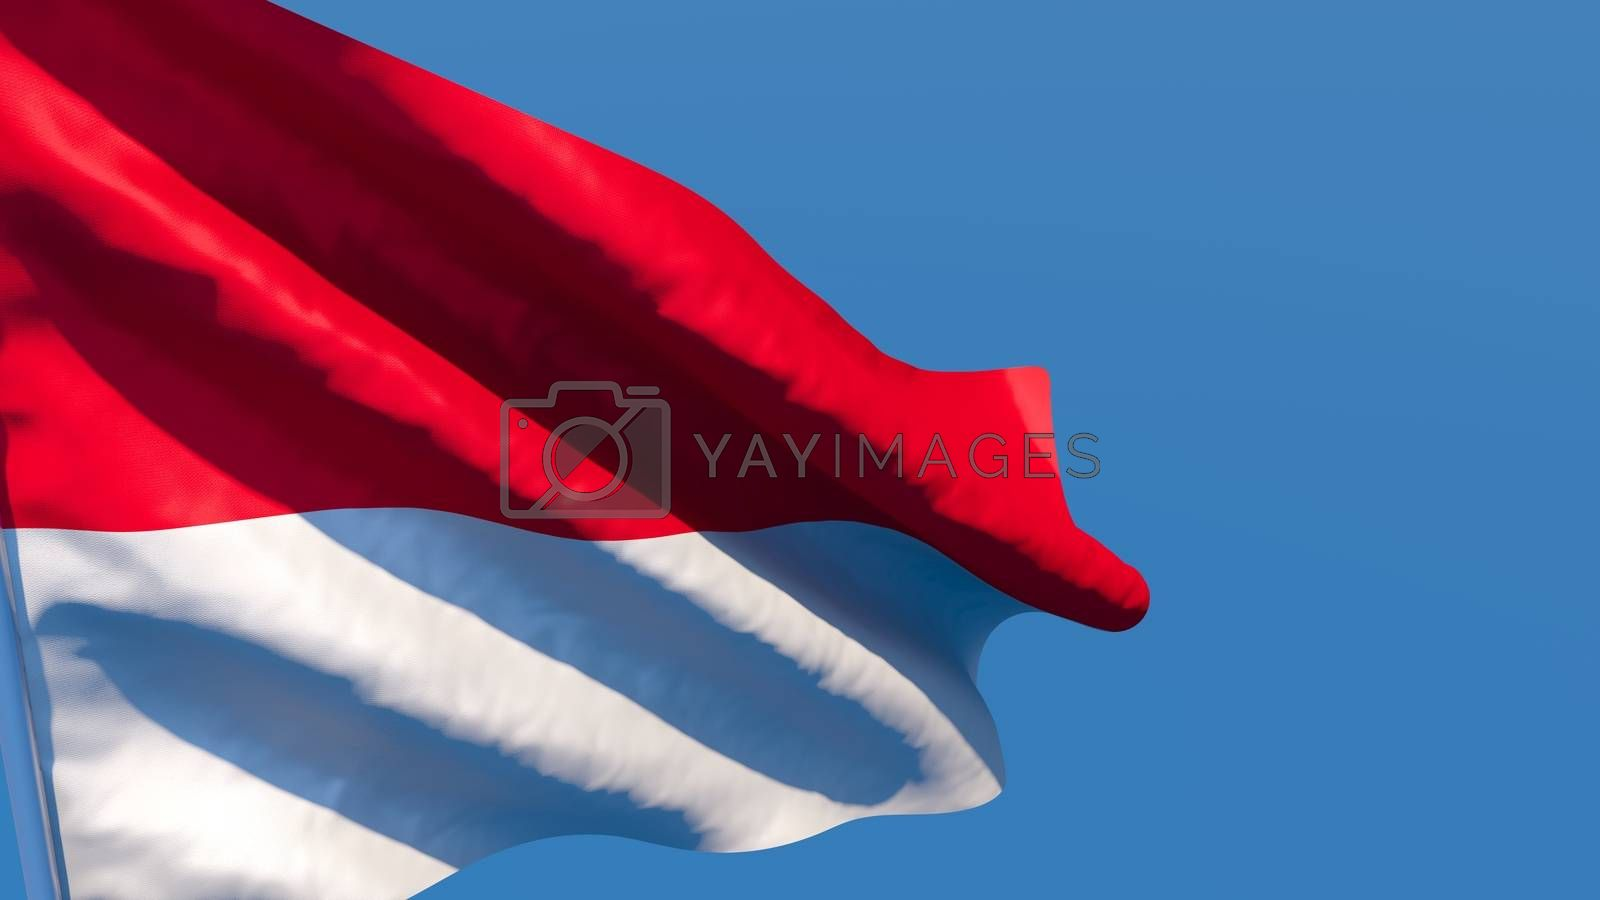 3D rendering of the national flag of Indonesia waving in the wind against a blue sky